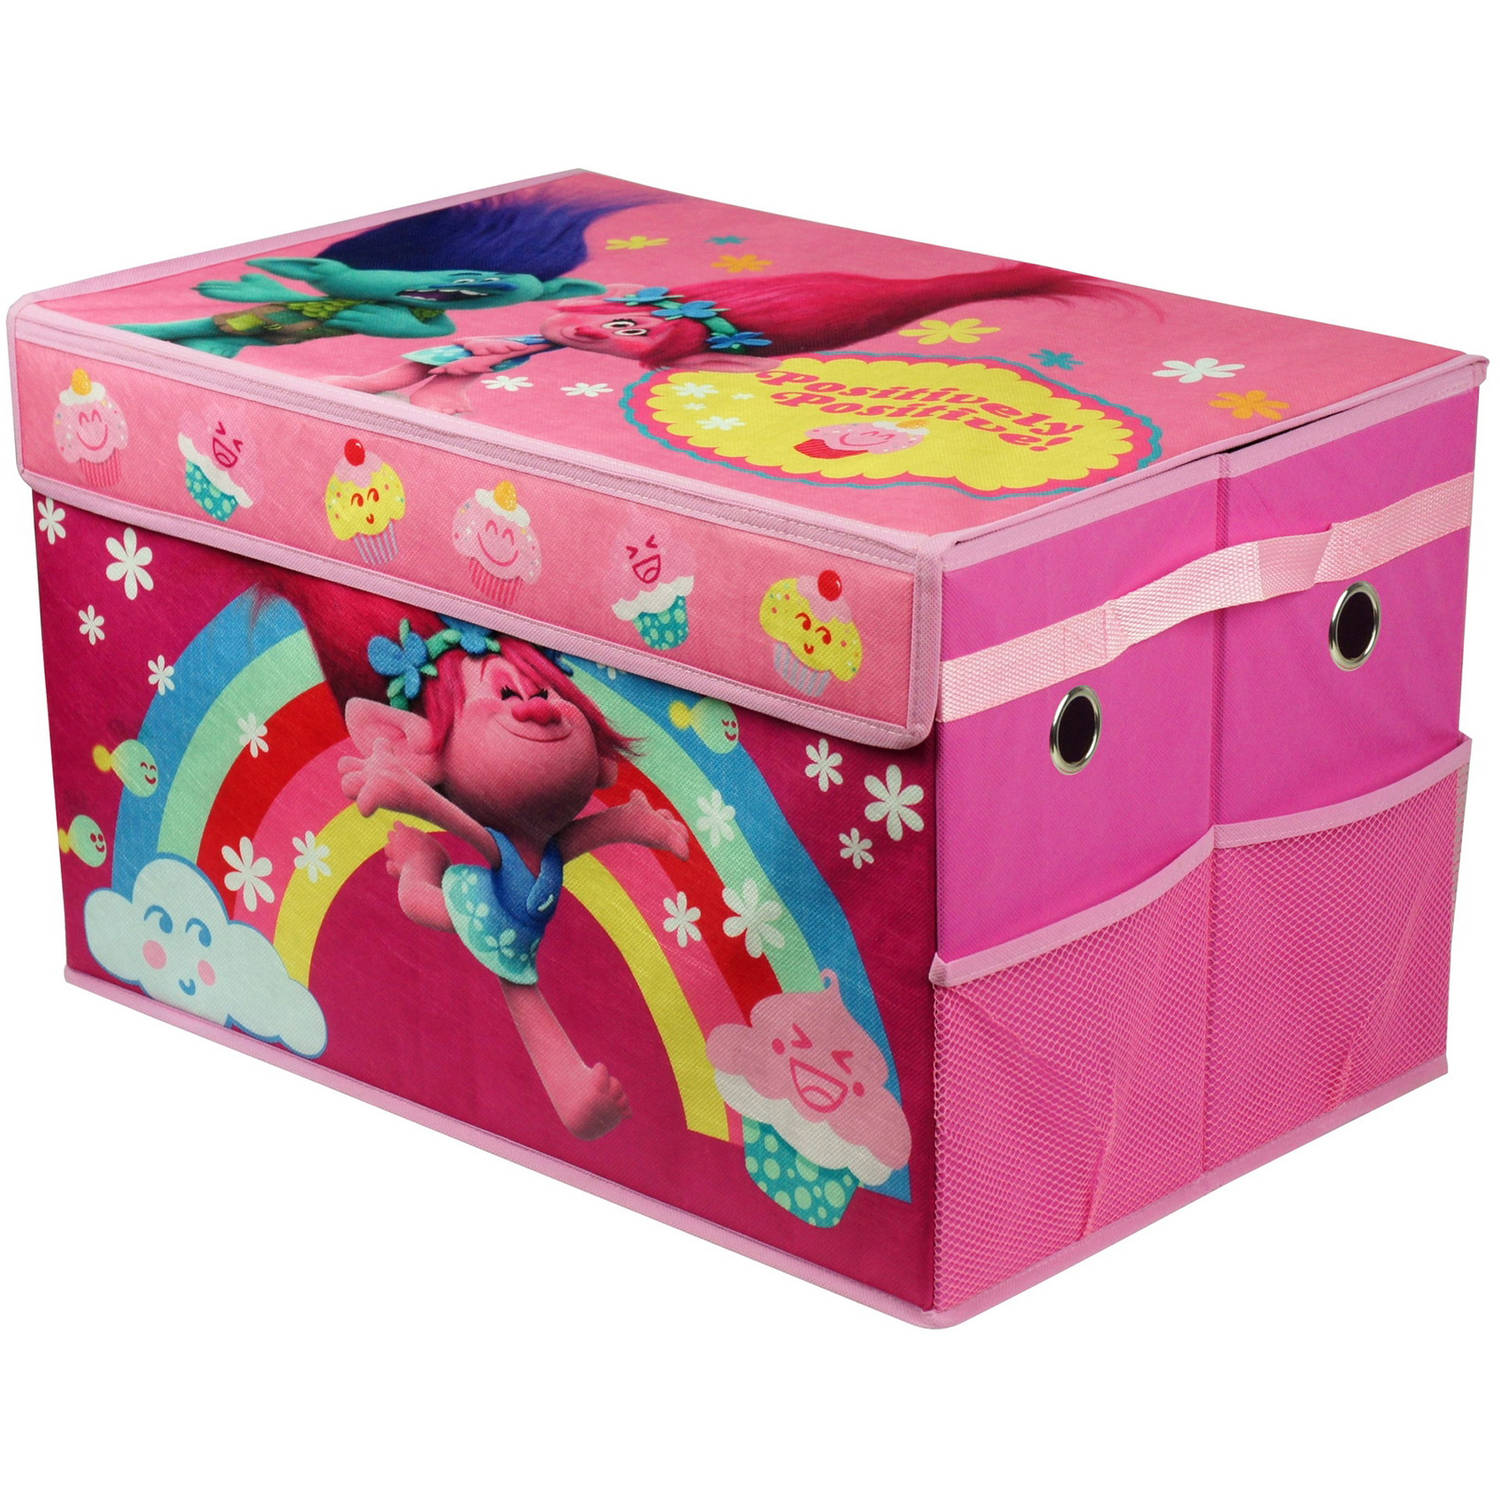 Delicieux Trolls Collapsible Toy Storage Trunk